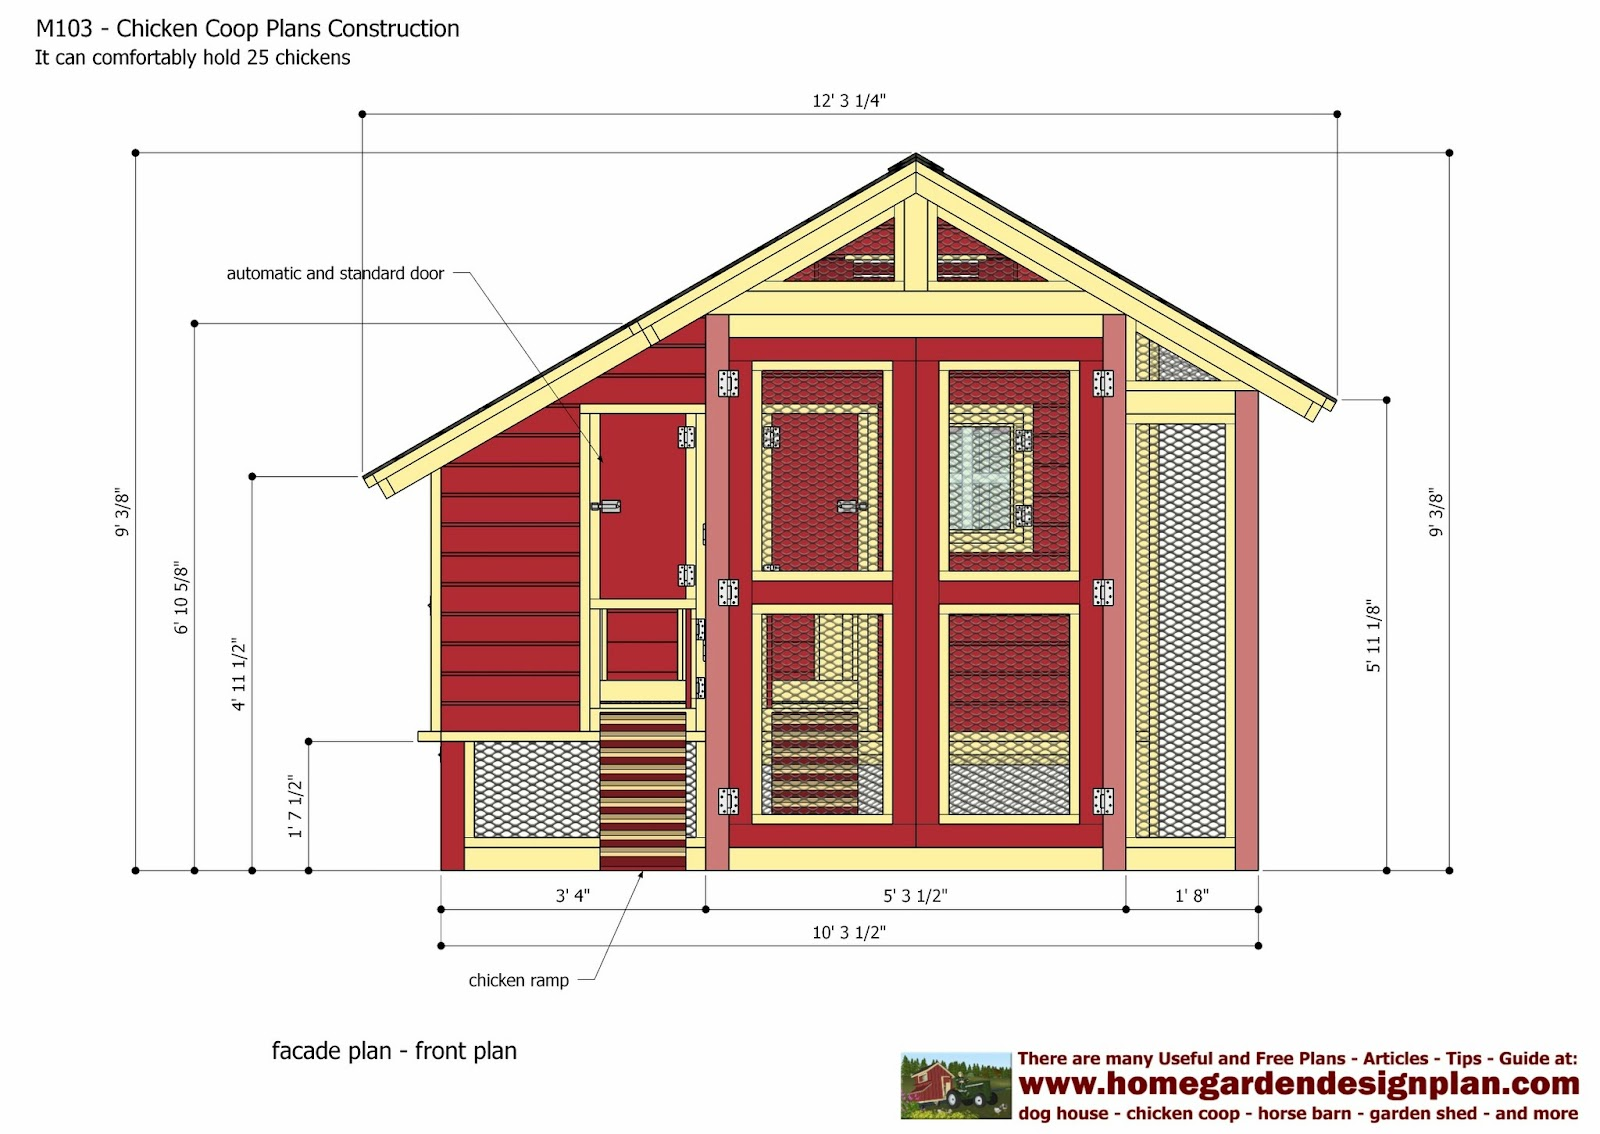 Home garden plans m103 chicken coop plans construction for Chicken coop size for 6 chickens